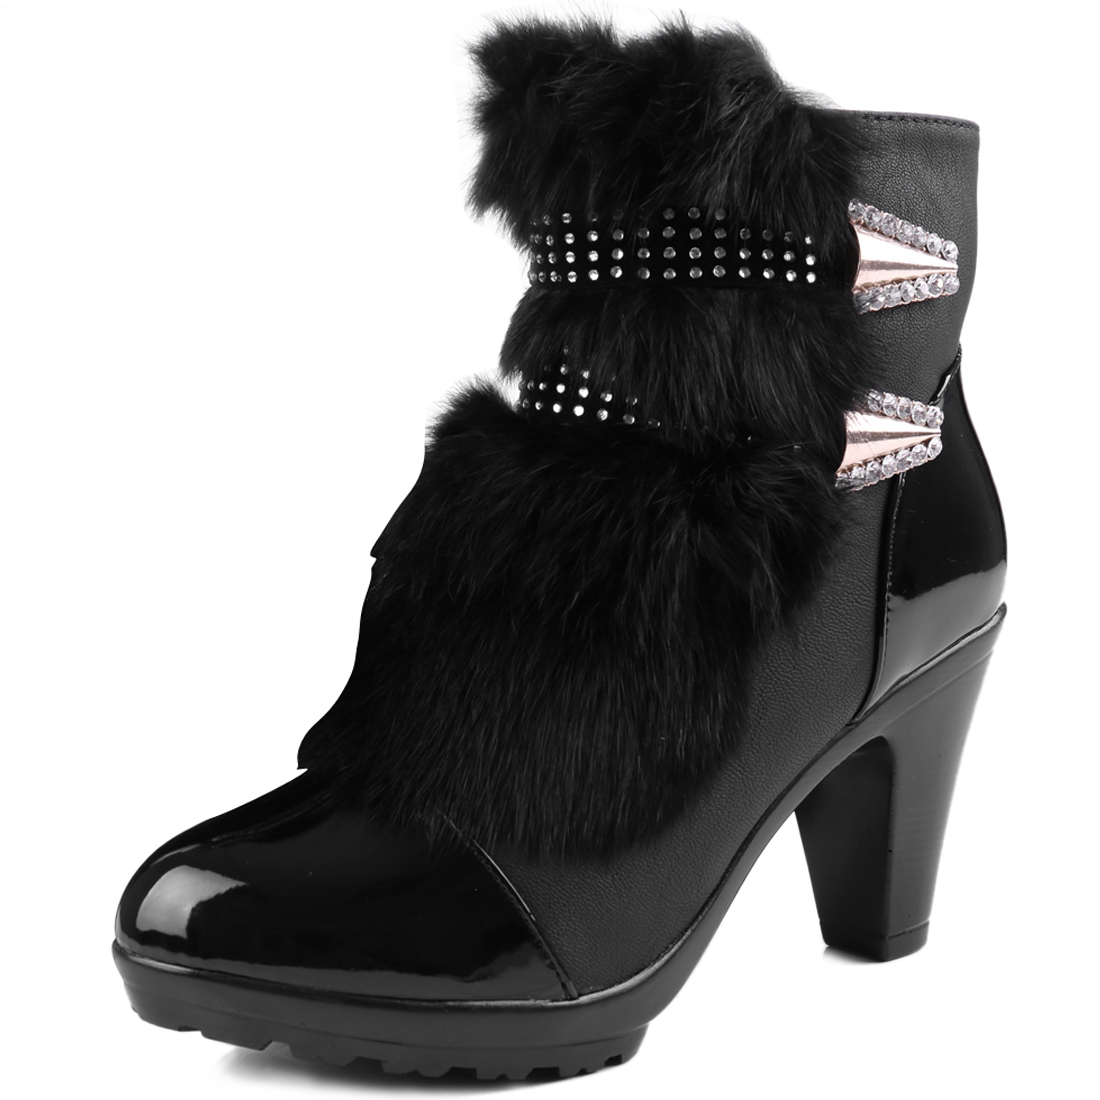 Women High Heel Panel Fashion Winter Boots Black US 7.5